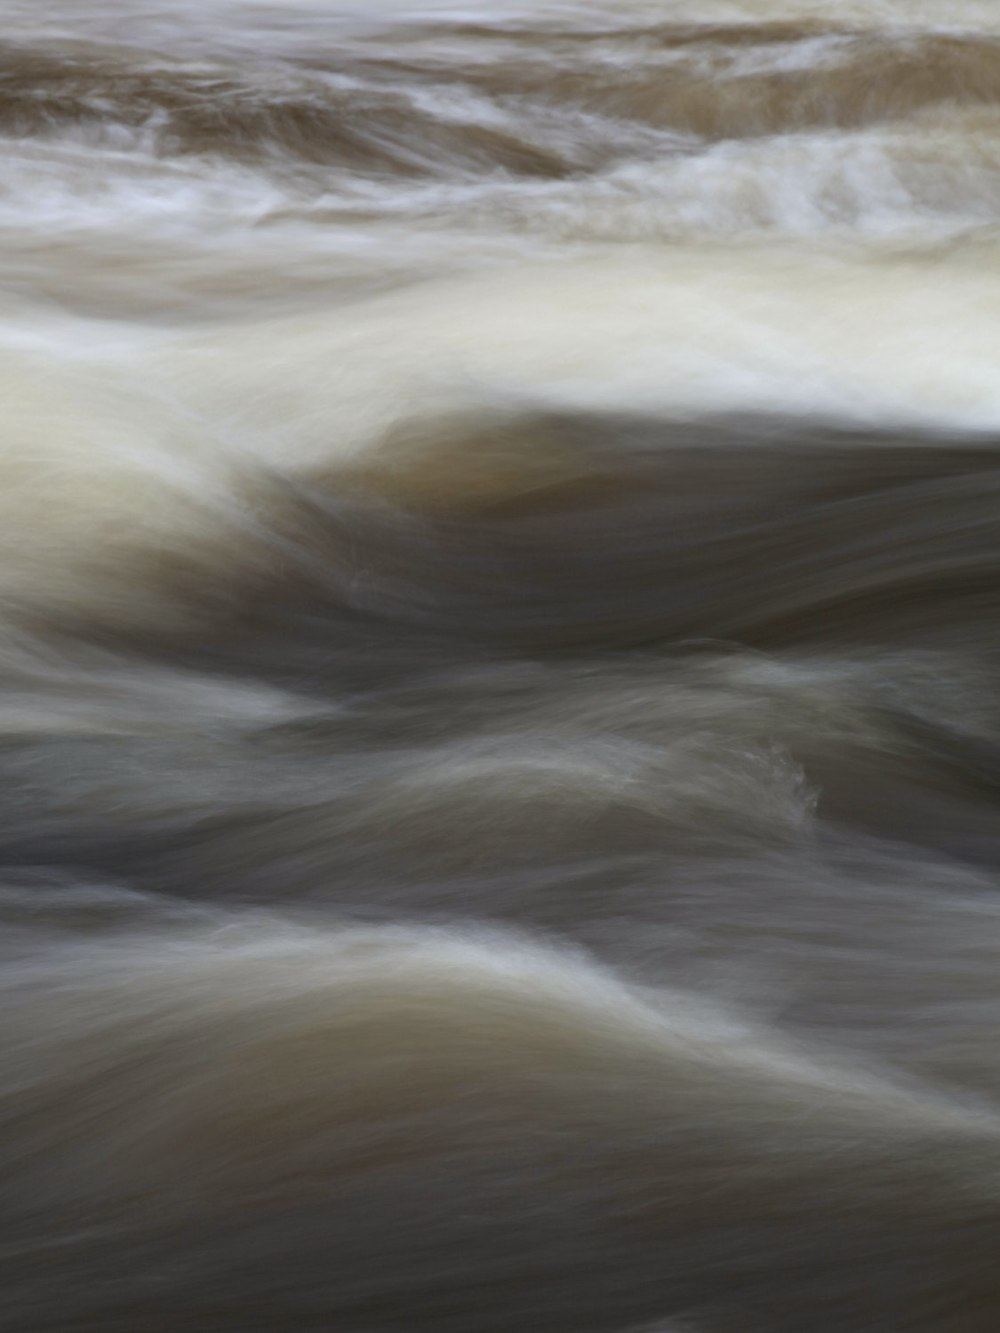 Christopher-Swan-River-Kelvin-Glasgow-Scotland 32013-12-15.jpg